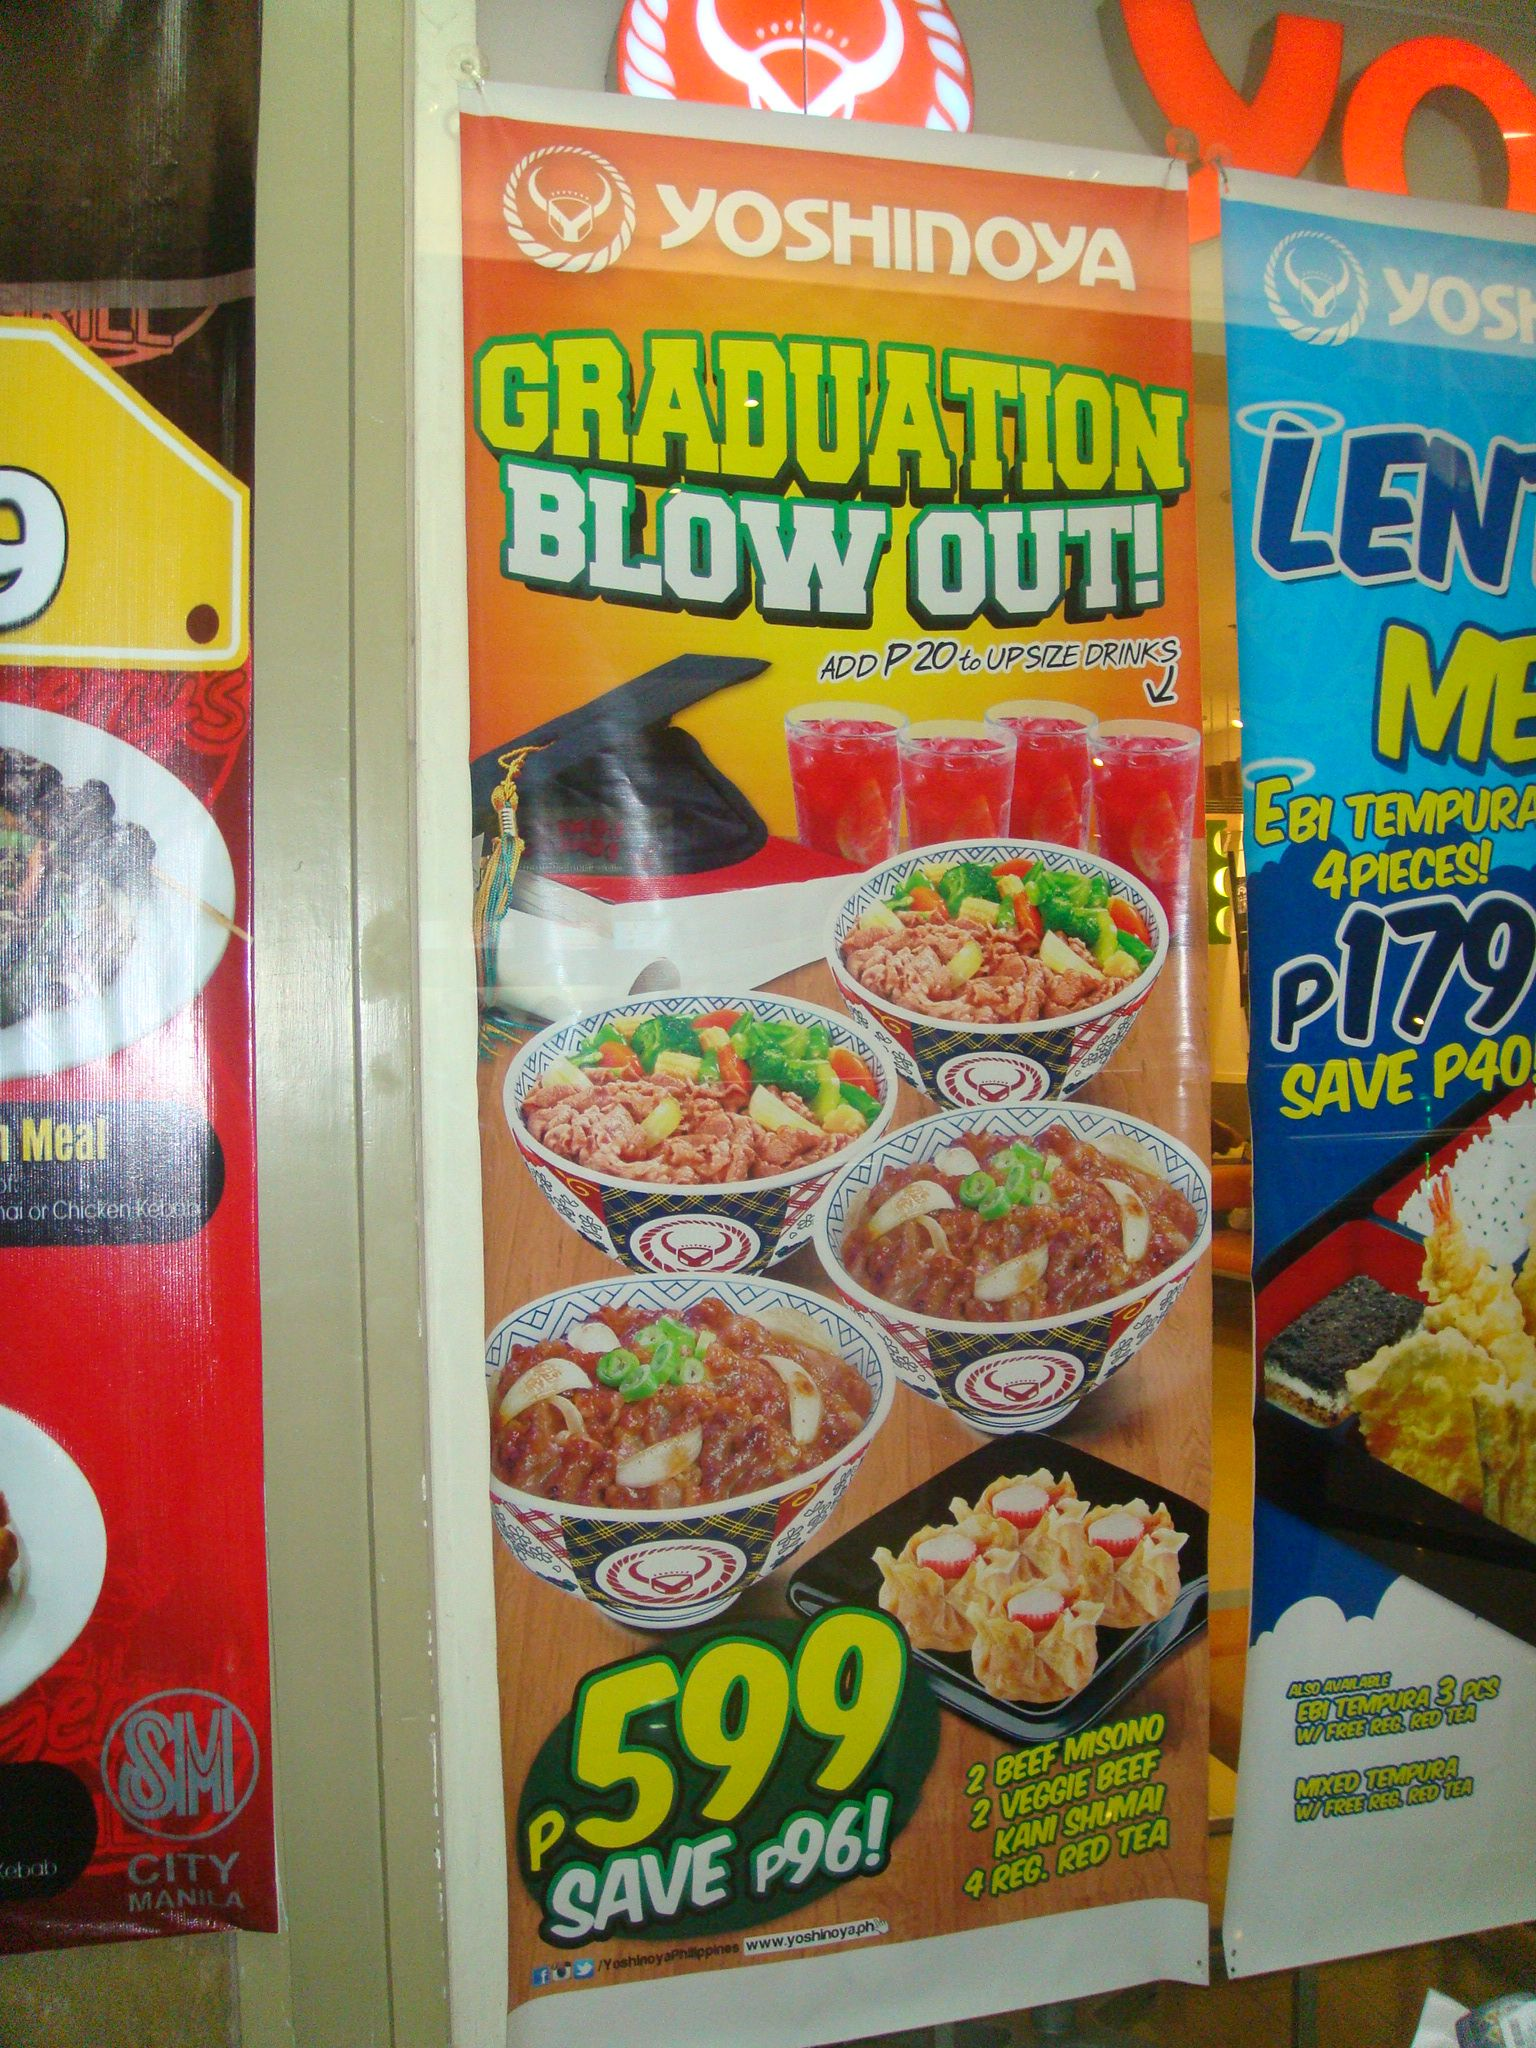 picture regarding Yoshinoya Coupons Printable named Yoshinoyas Commencement Blow-out! Take a look at Yoshinoya at the 4th